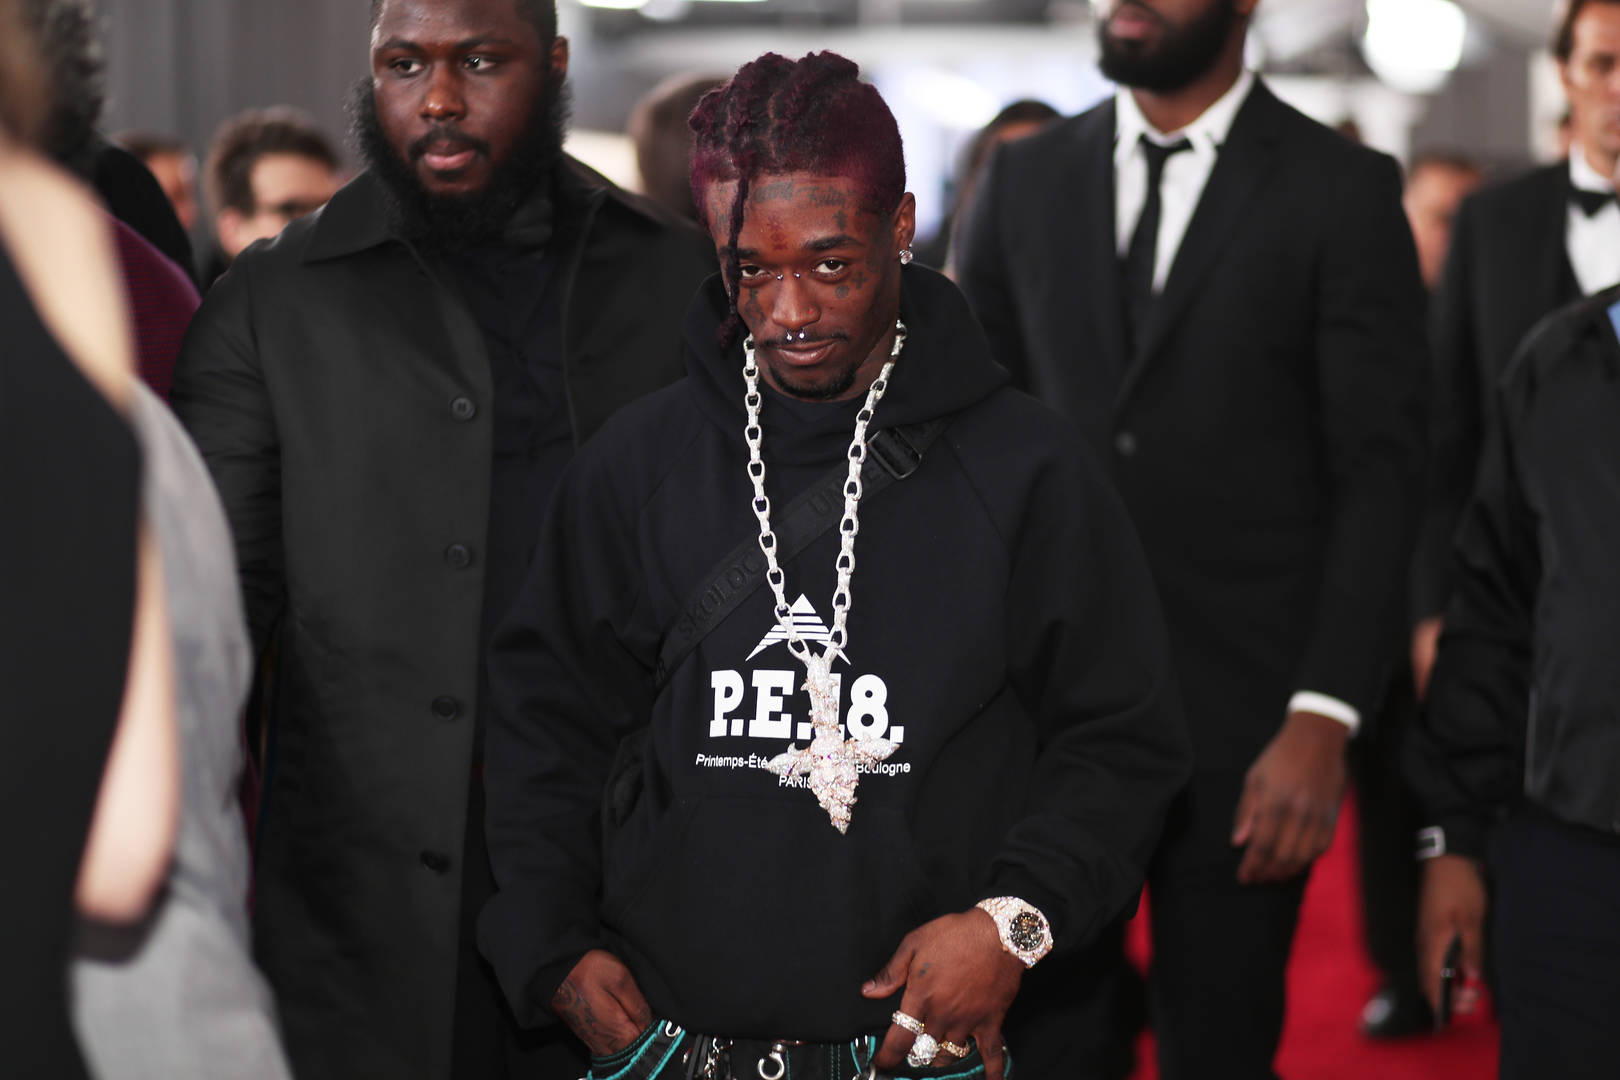 Lil Uzi Vert Drops New Dance Song